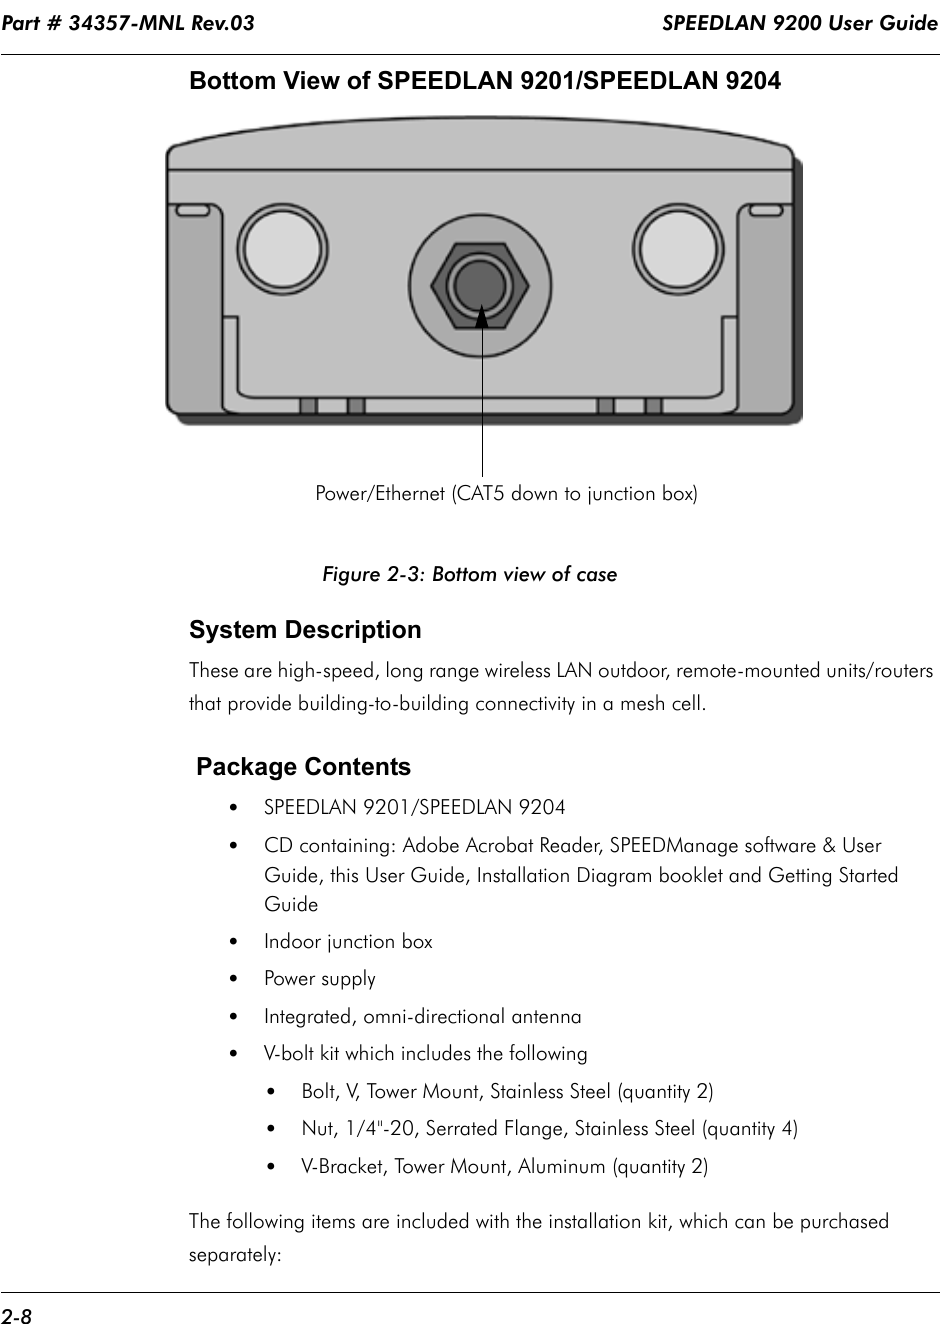 """Part # 34357-MNL Rev.03                                                                  SPEEDLAN 9200 User Guide 2-8Bottom View of SPEEDLAN 9201/SPEEDLAN 9204 Figure 2-3: Bottom view of caseSystem Description  These are high-speed, long range wireless LAN outdoor, remote-mounted units/routers that provide building-to-building connectivity in a mesh cell.        Package Contents  •SPEEDLAN 9201/SPEEDLAN 9204 •CD containing: Adobe Acrobat Reader, SPEEDManage software & User Guide, this User Guide, Installation Diagram booklet and Getting Started Guide•Indoor junction box•Power supply•Integrated, omni-directional antenna  •V-bolt kit which includes the following •Bolt, V, Tower Mount, Stainless Steel (quantity 2)•Nut, 1/4""""-20, Serrated Flange, Stainless Steel (quantity 4)•V-Bracket, Tower Mount, Aluminum (quantity 2)The following items are included with the installation kit, which can be purchased separately:            Power/Ethernet (CAT5 down to junction box)"""